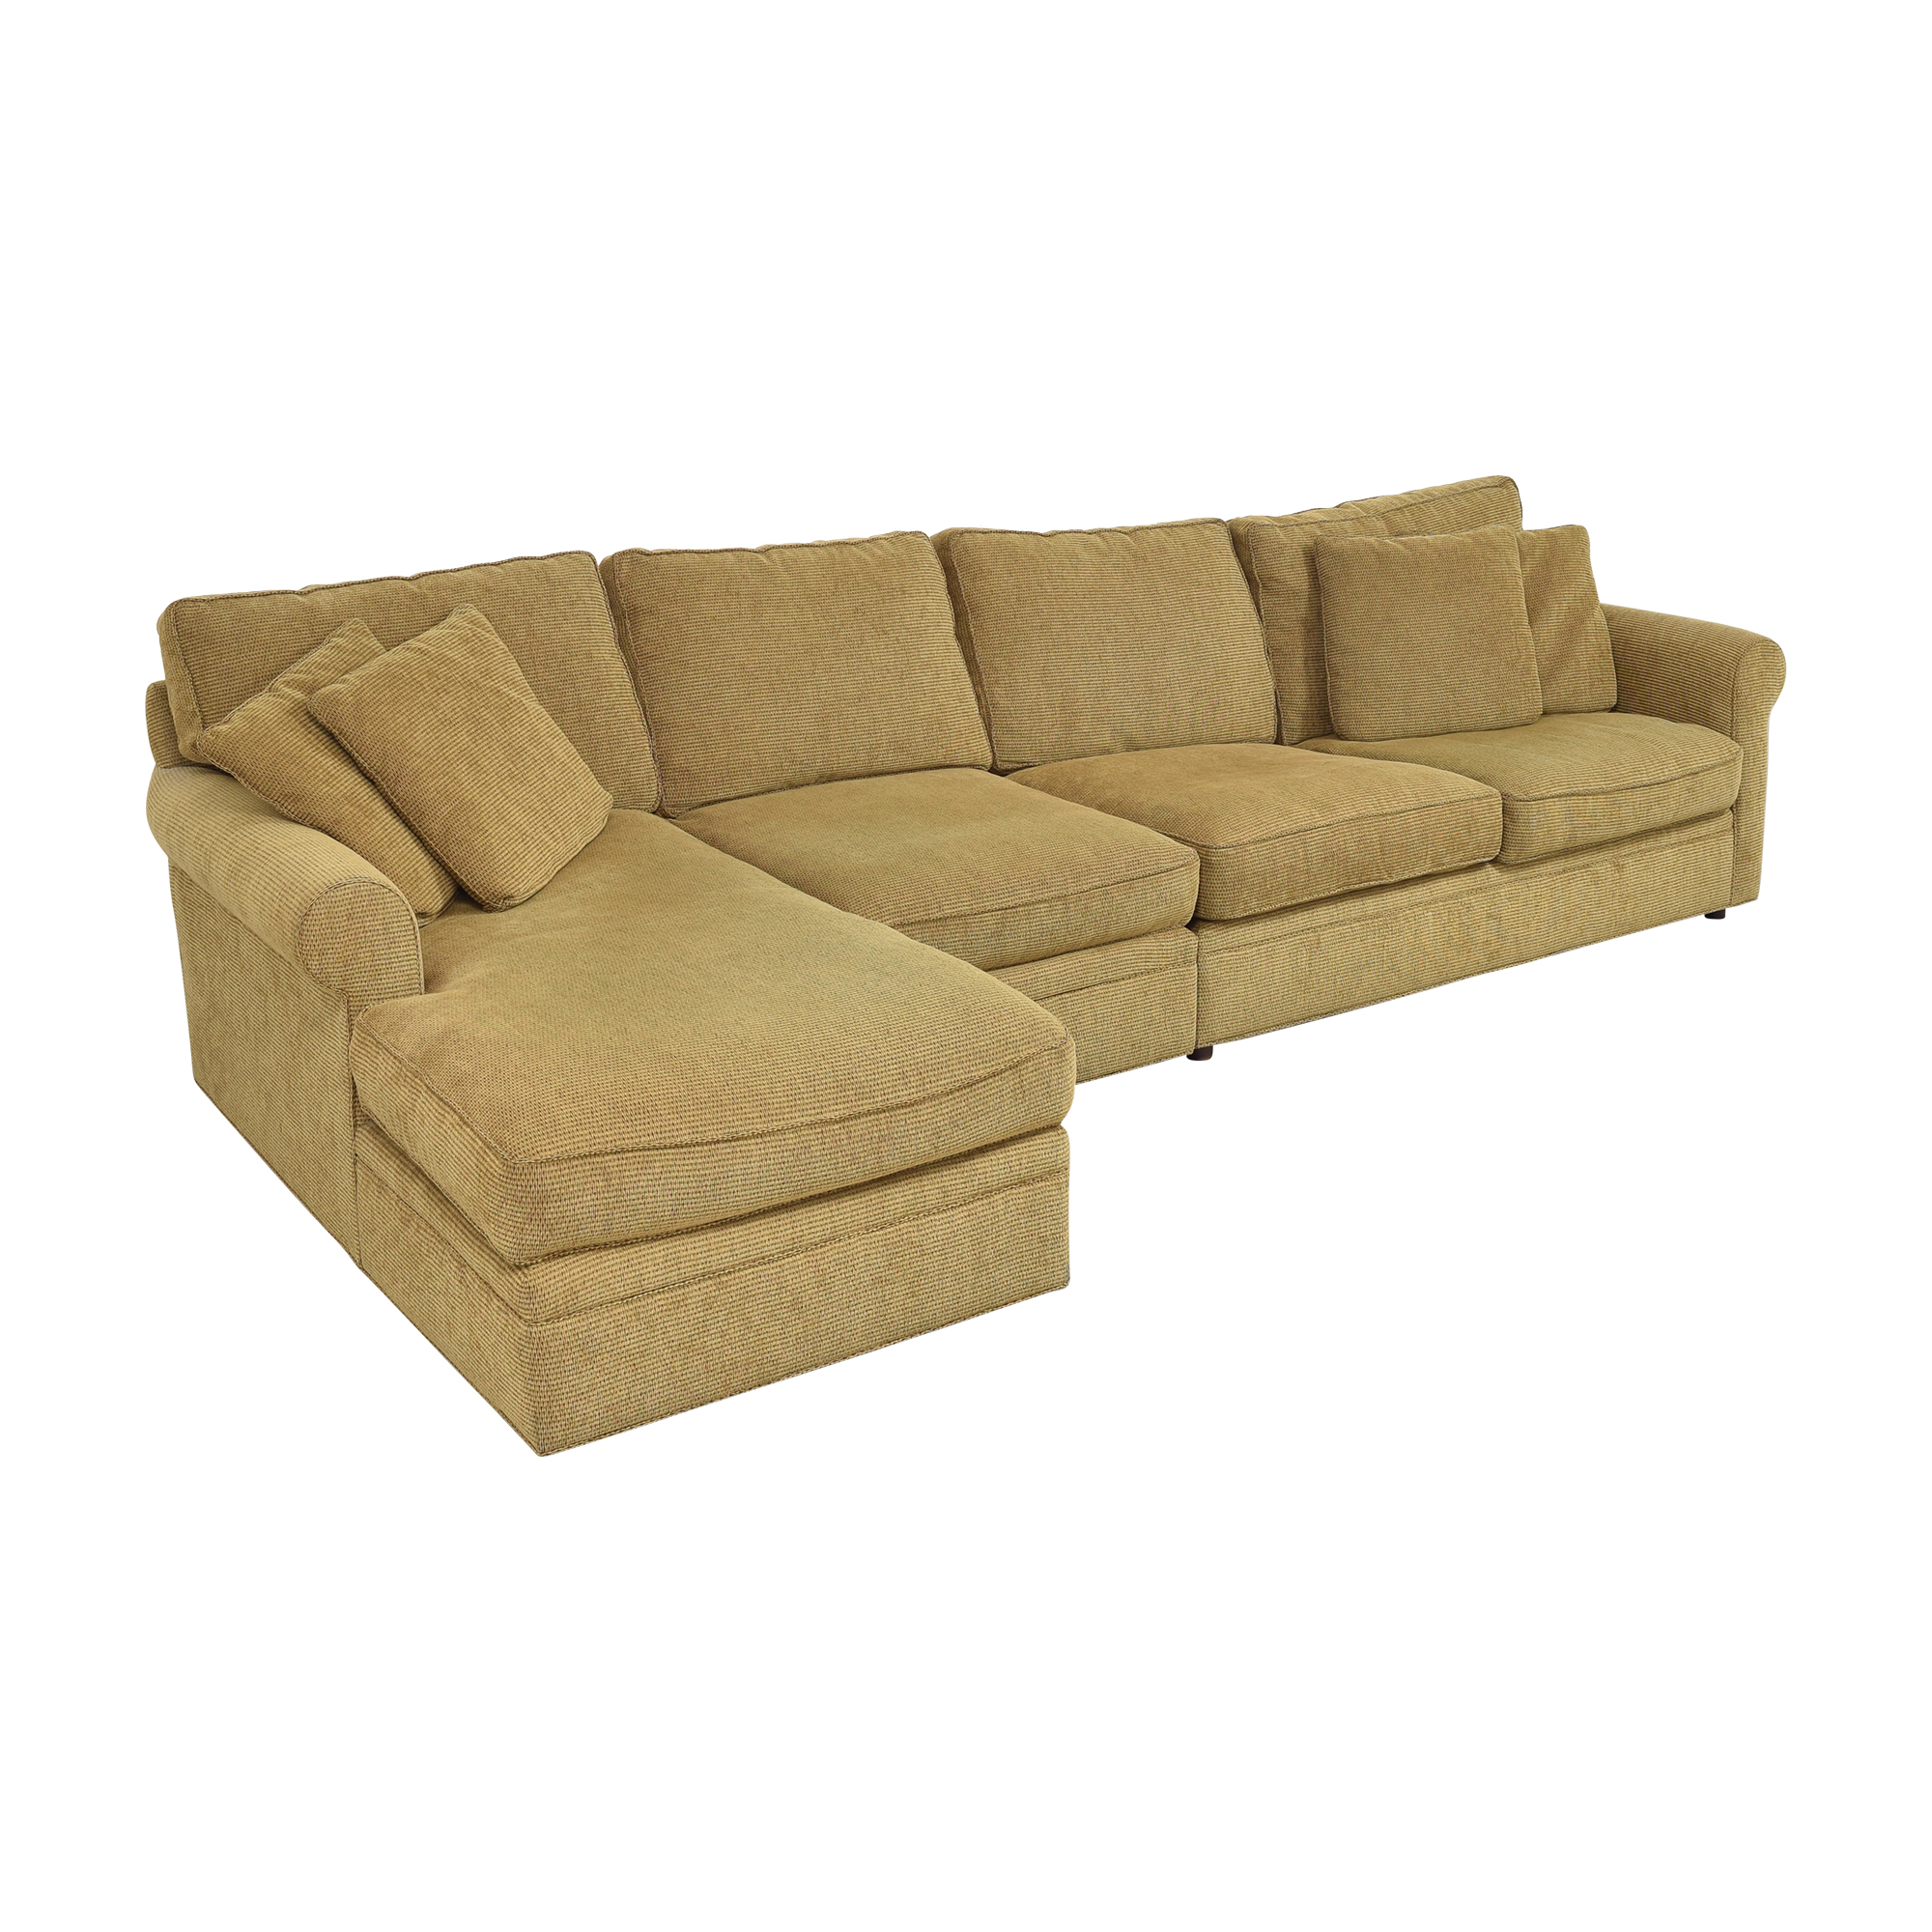 Crate & Barrel Crate & Barrel Chaise Sectional Sleeper Sofa nyc